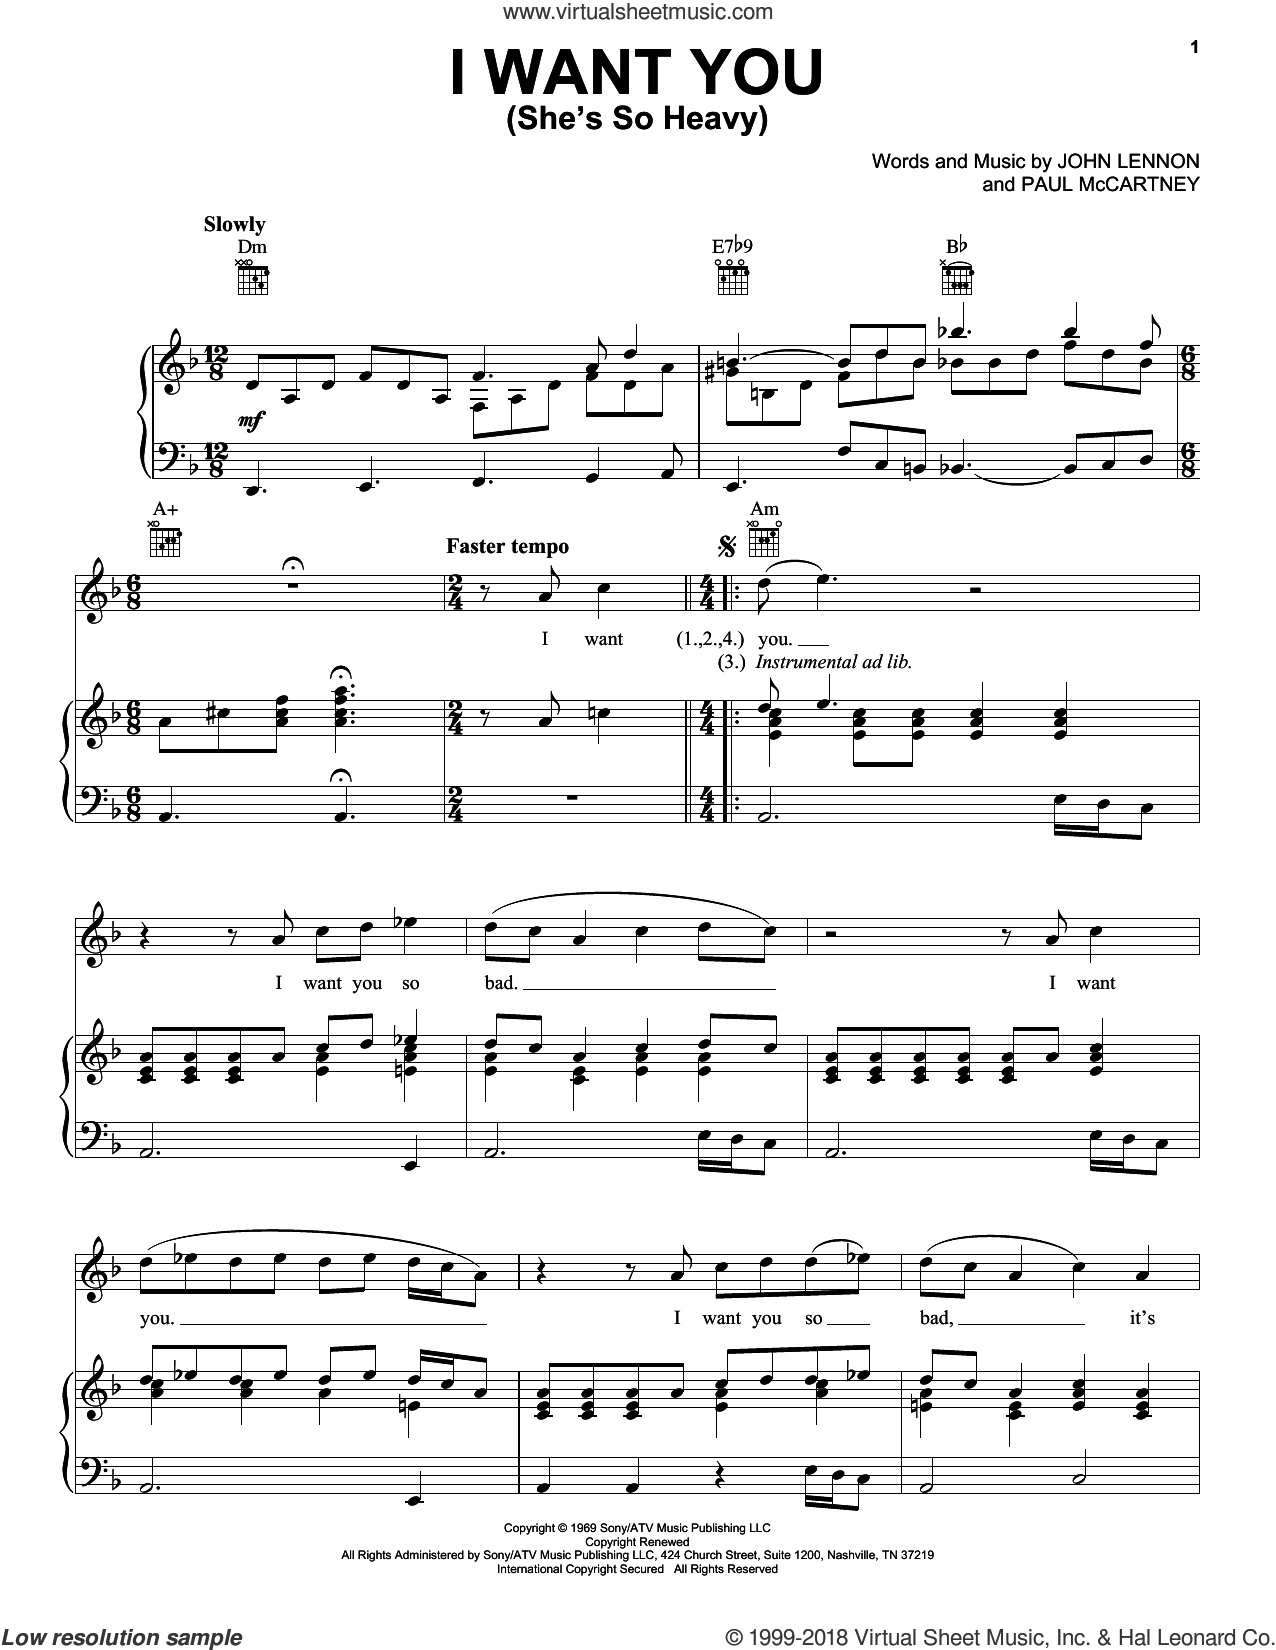 I Want You (She's So Heavy) sheet music for voice, piano or guitar by Paul McCartney